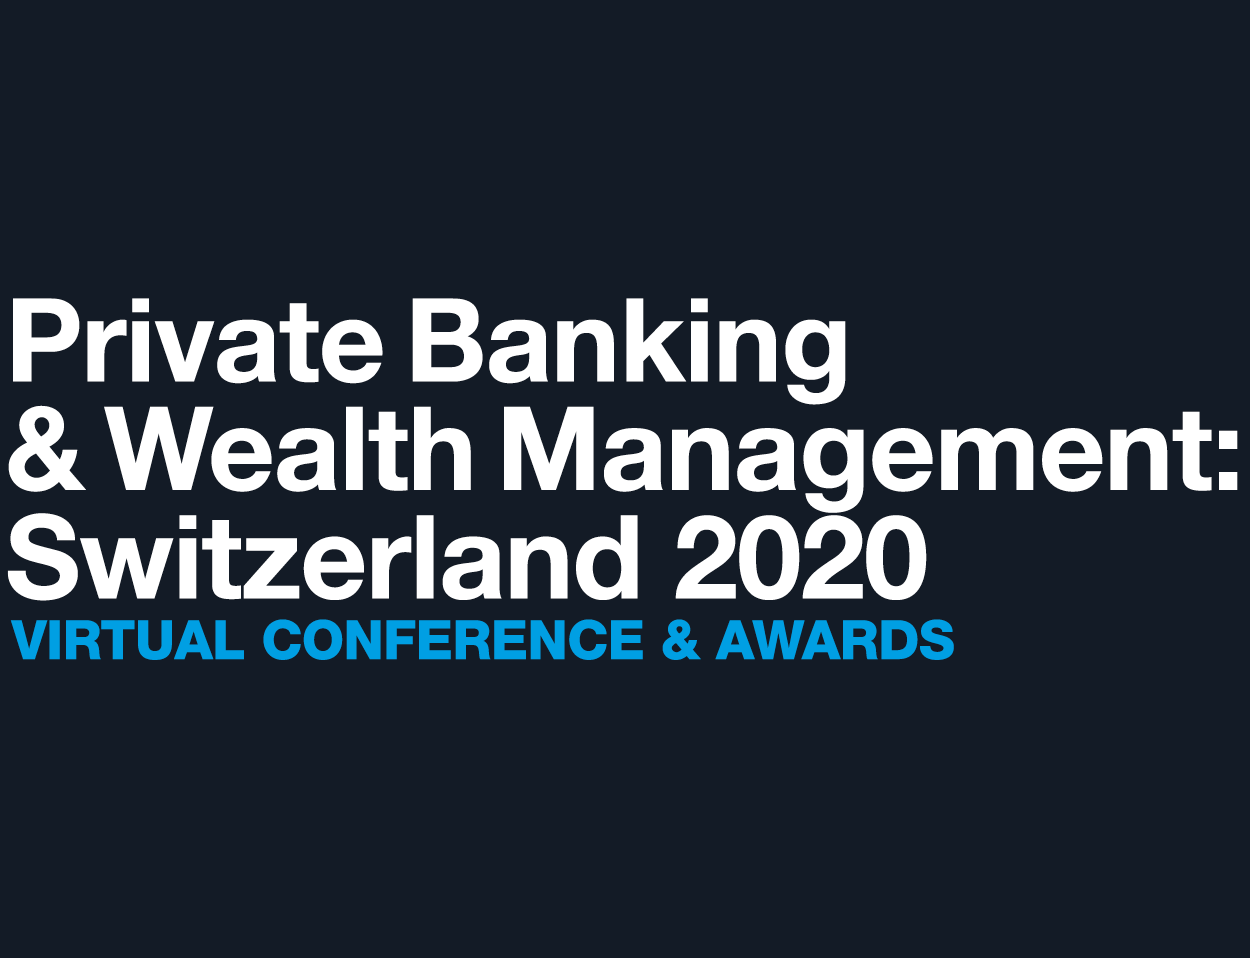 Private Banking & Wealth Management: Switzerland 2020 Virtual Conference and Awards